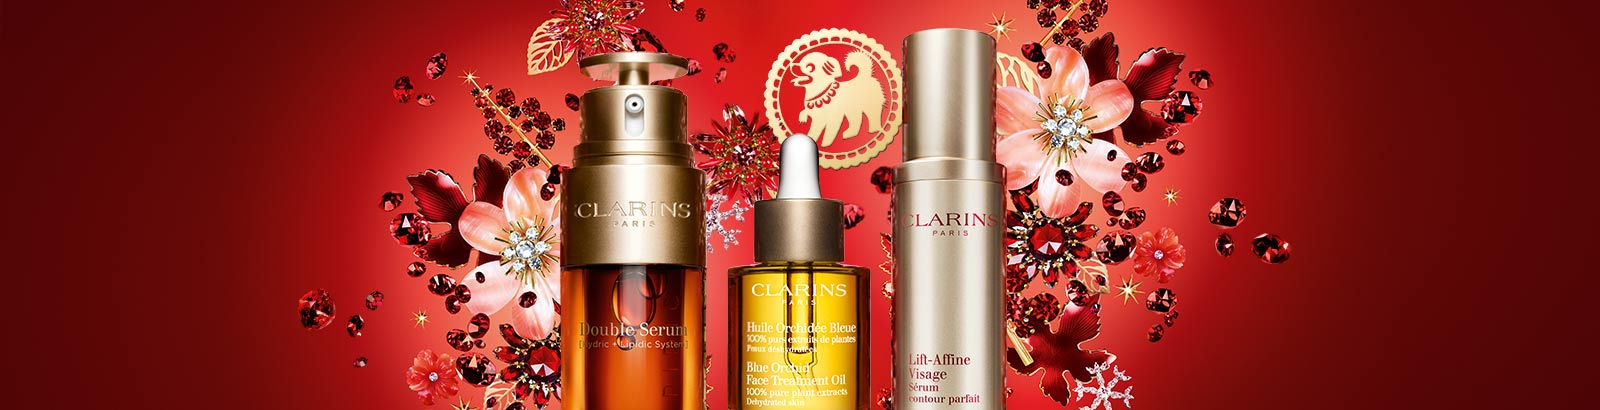 Happy New Year! See beauty blossom with Clarins. Celebrate with fresh-picked formulas for luminous skin.